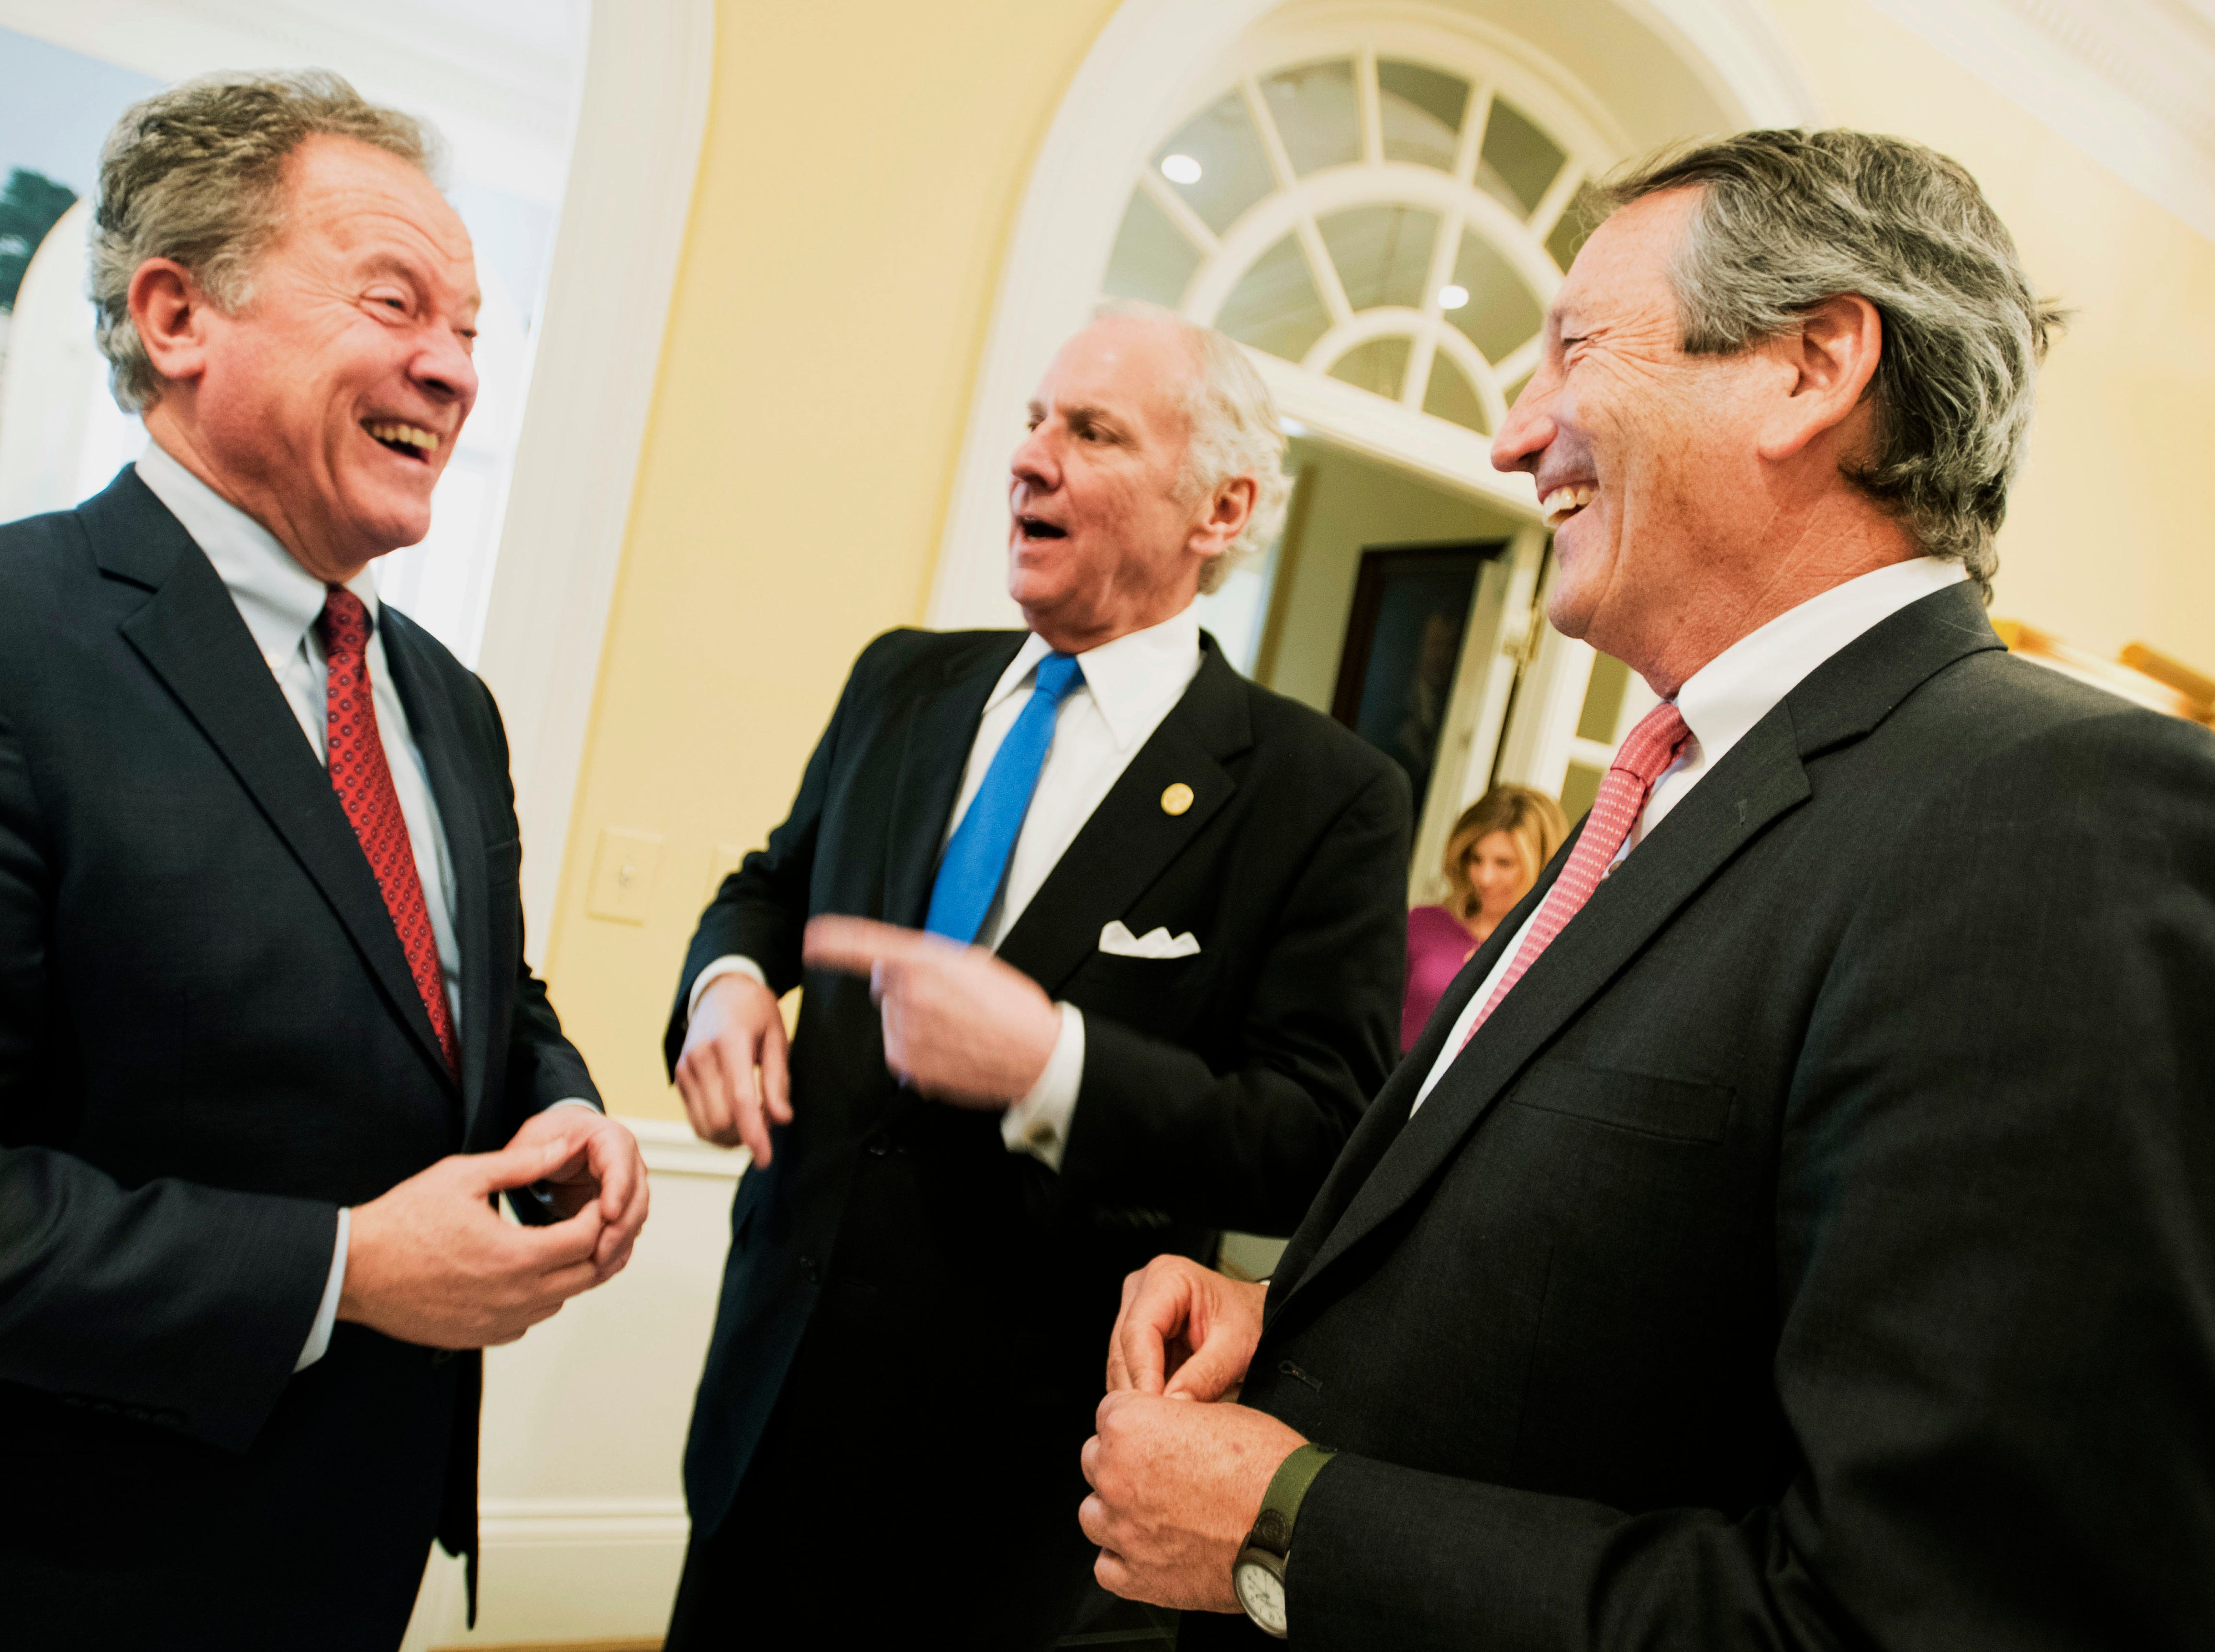 Former South Carolina Governors Mark Sanford, right, and David Beasley, left, joke around with current governor Henry McMaster at the South Carolina Governor's Mansion, Wednesday, Jan. 9, 2019, in Columbia, S.C. McMaster was inaugurated for his first full term earlier in the day. (AP Photo/Sean Rayford)